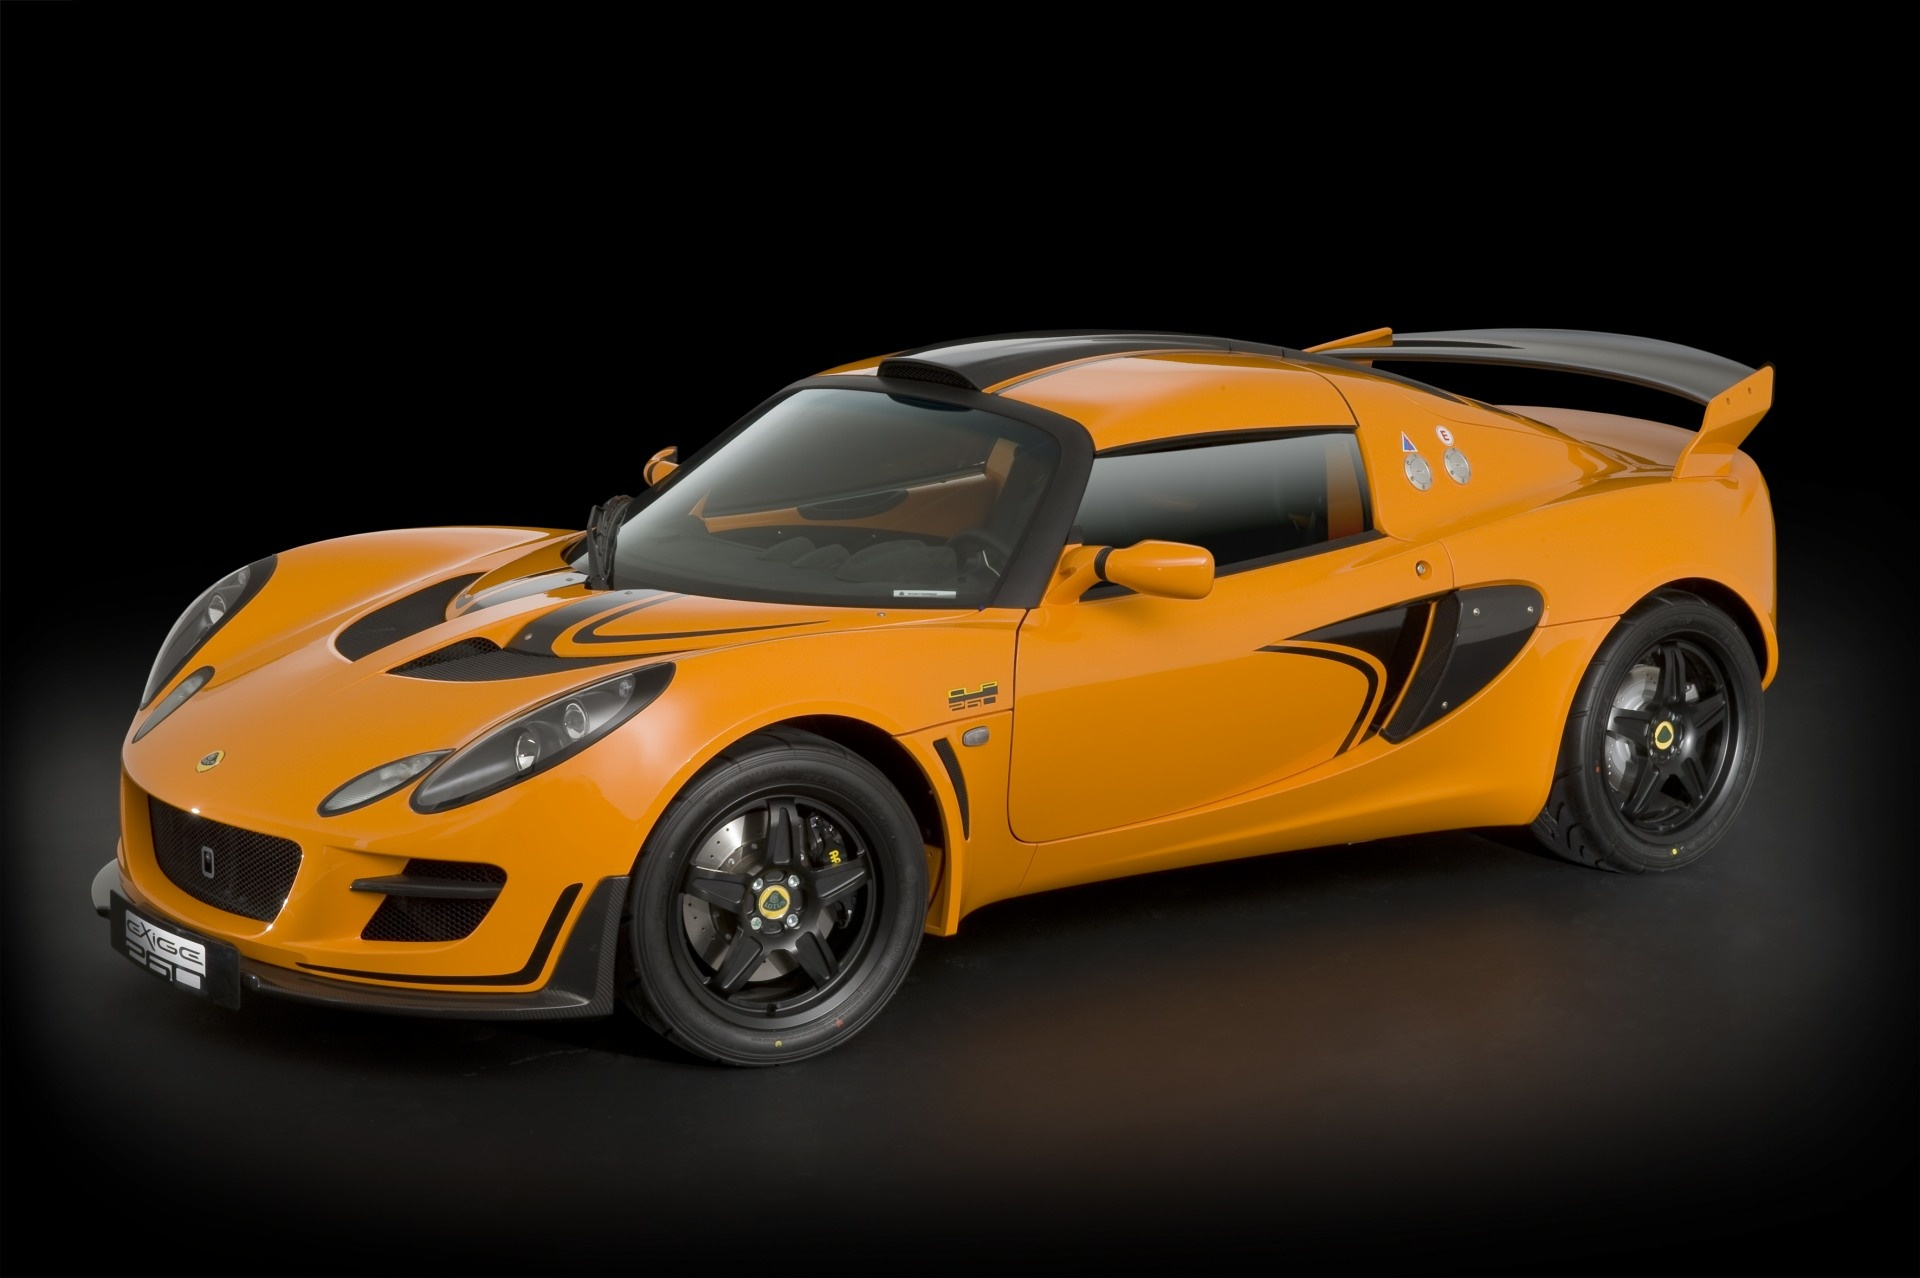 2006 Lotus Exige Cup Wallpaper and Image Gallery